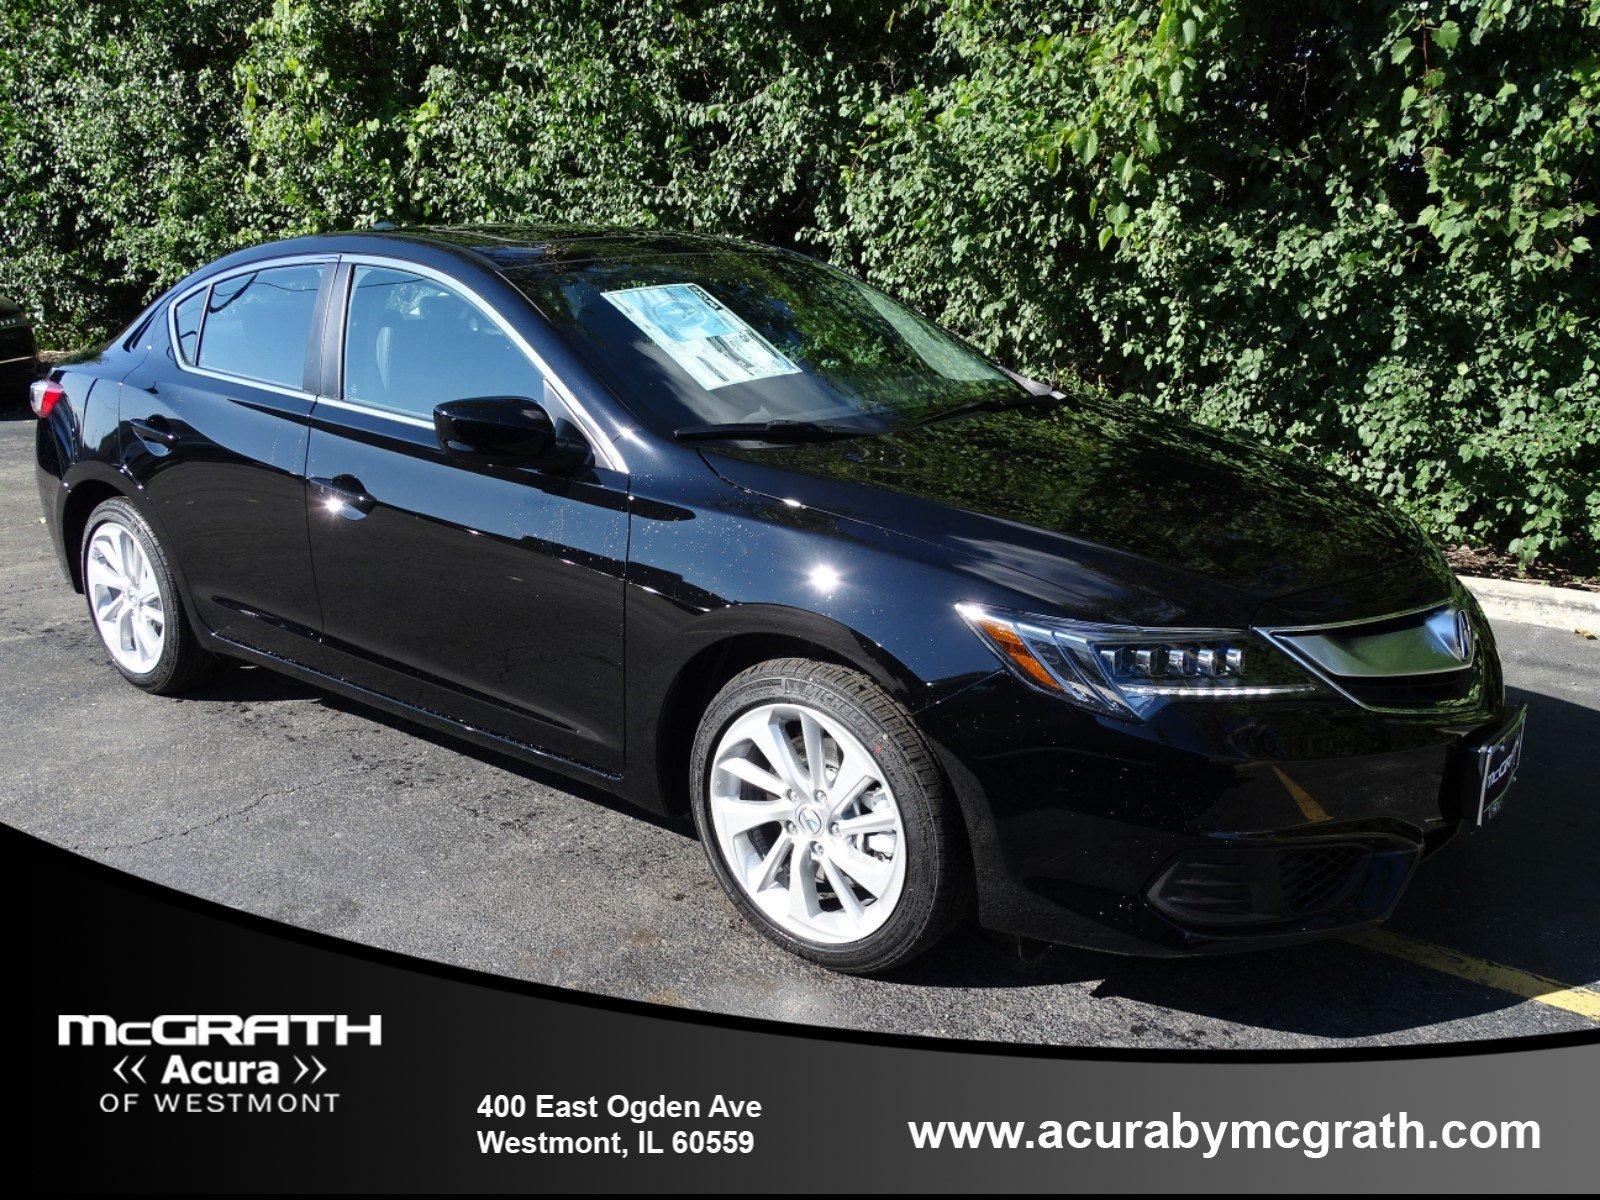 New Acura ILX Base Dr Car In Westmont V McGrath Acura - Ilx acura 2018